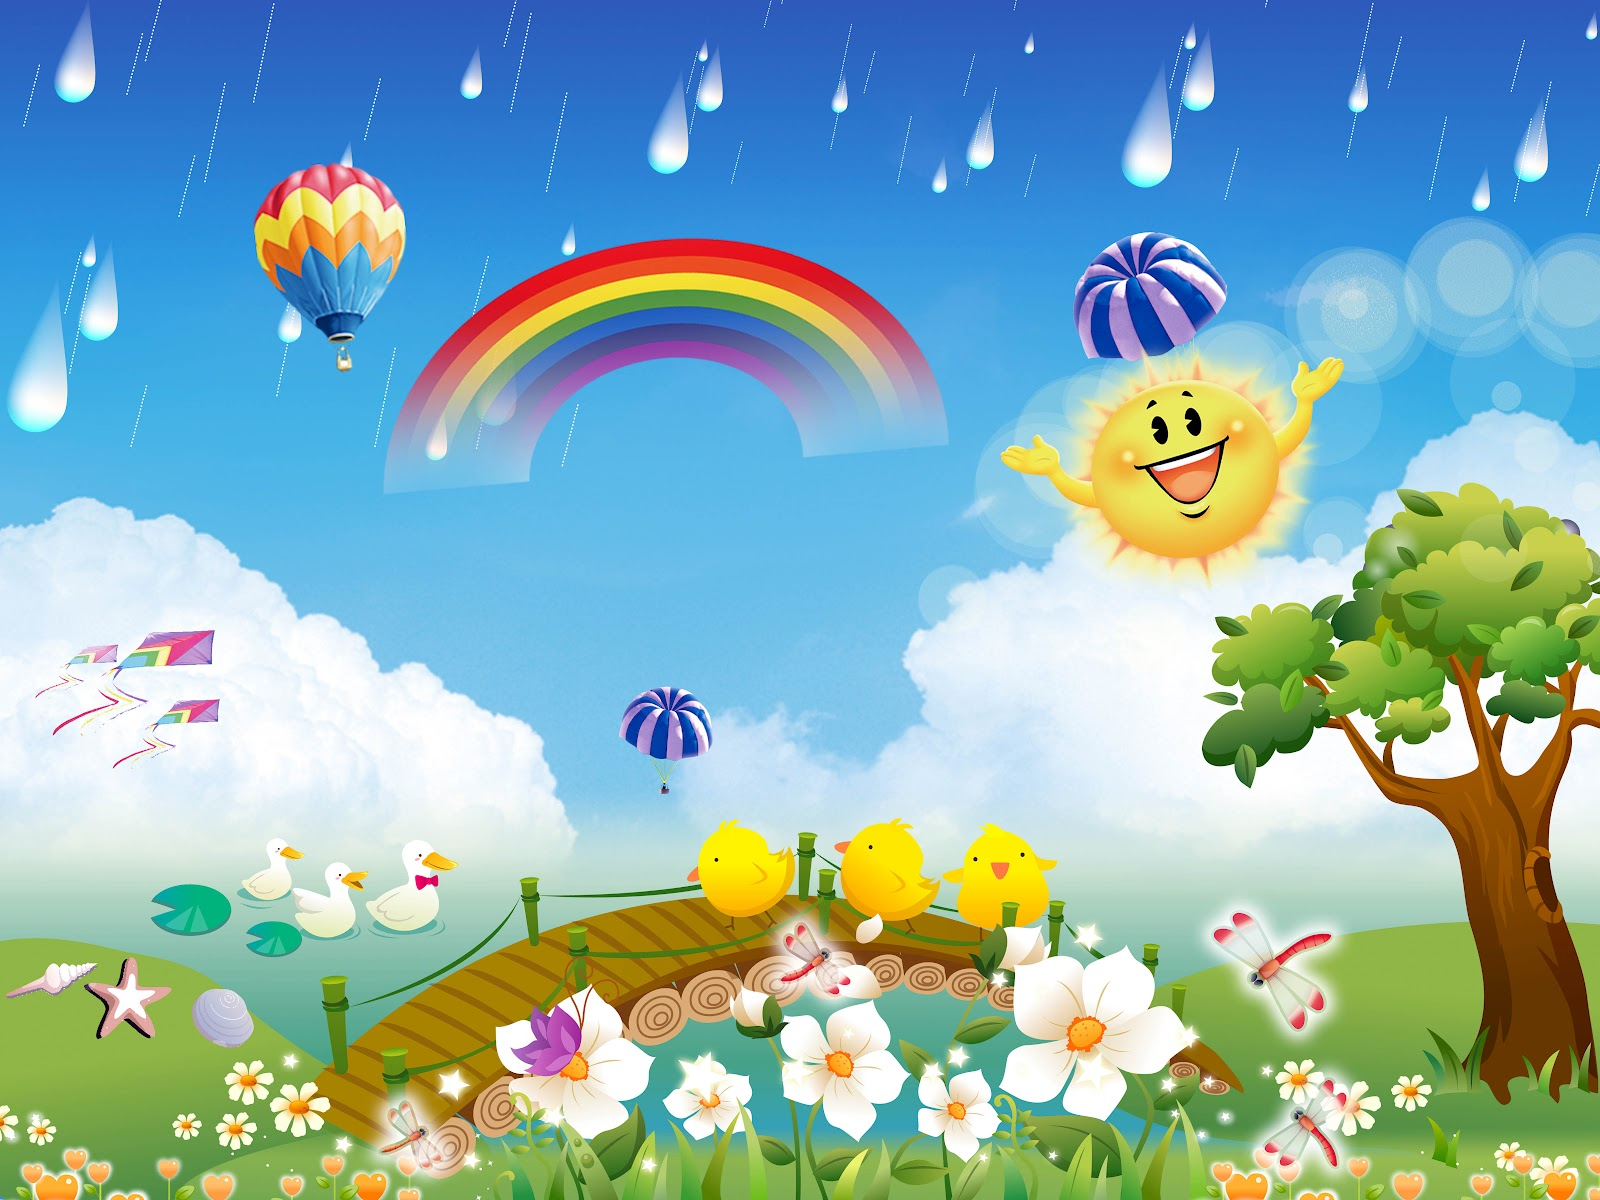 Wallpaper for kids wallpapersafari for Kids wallpaper